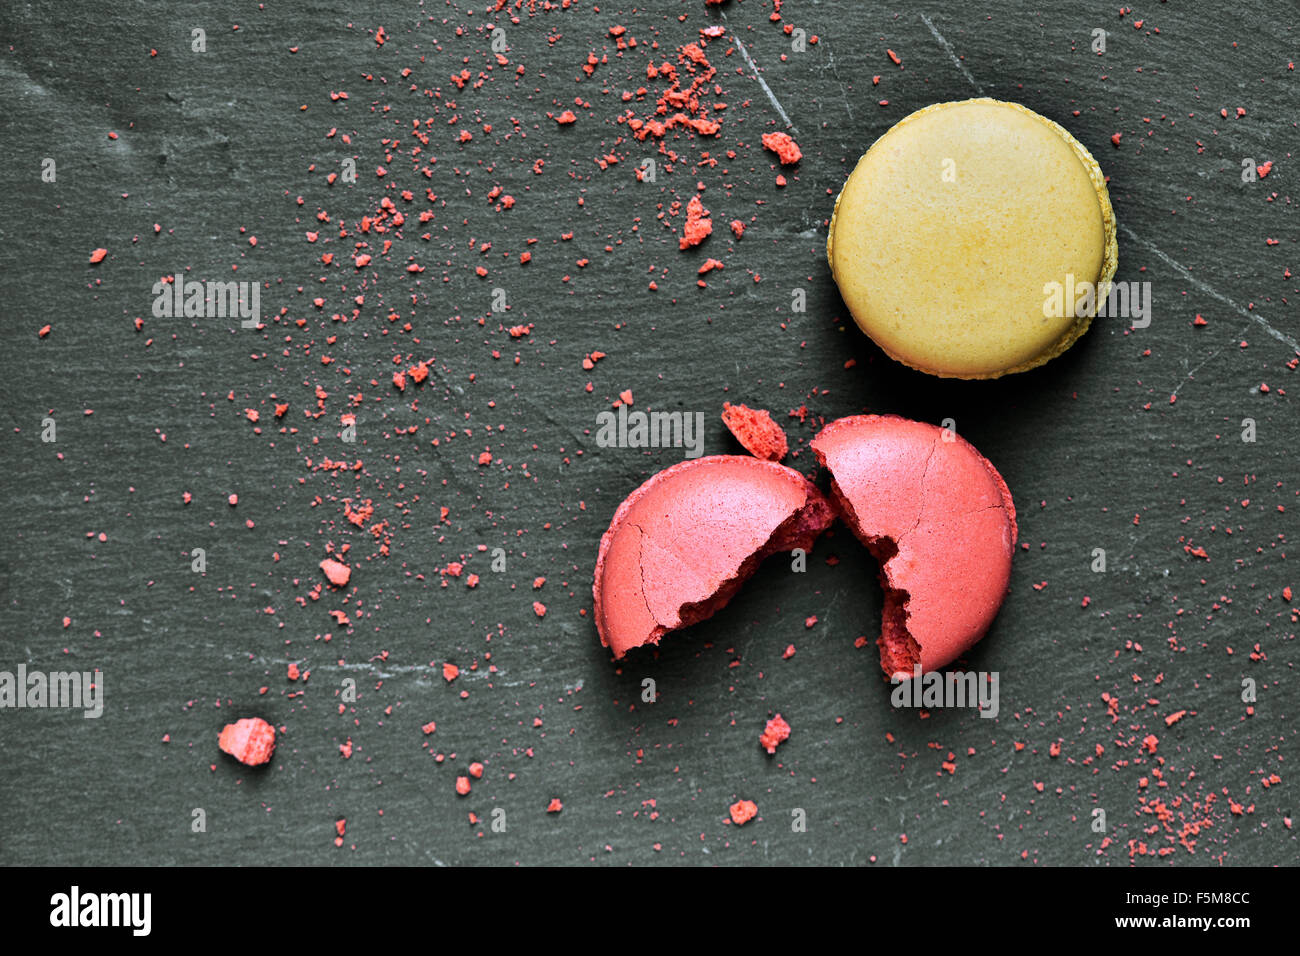 some appetizing macarons of different flavors on a slate surface - Stock Image